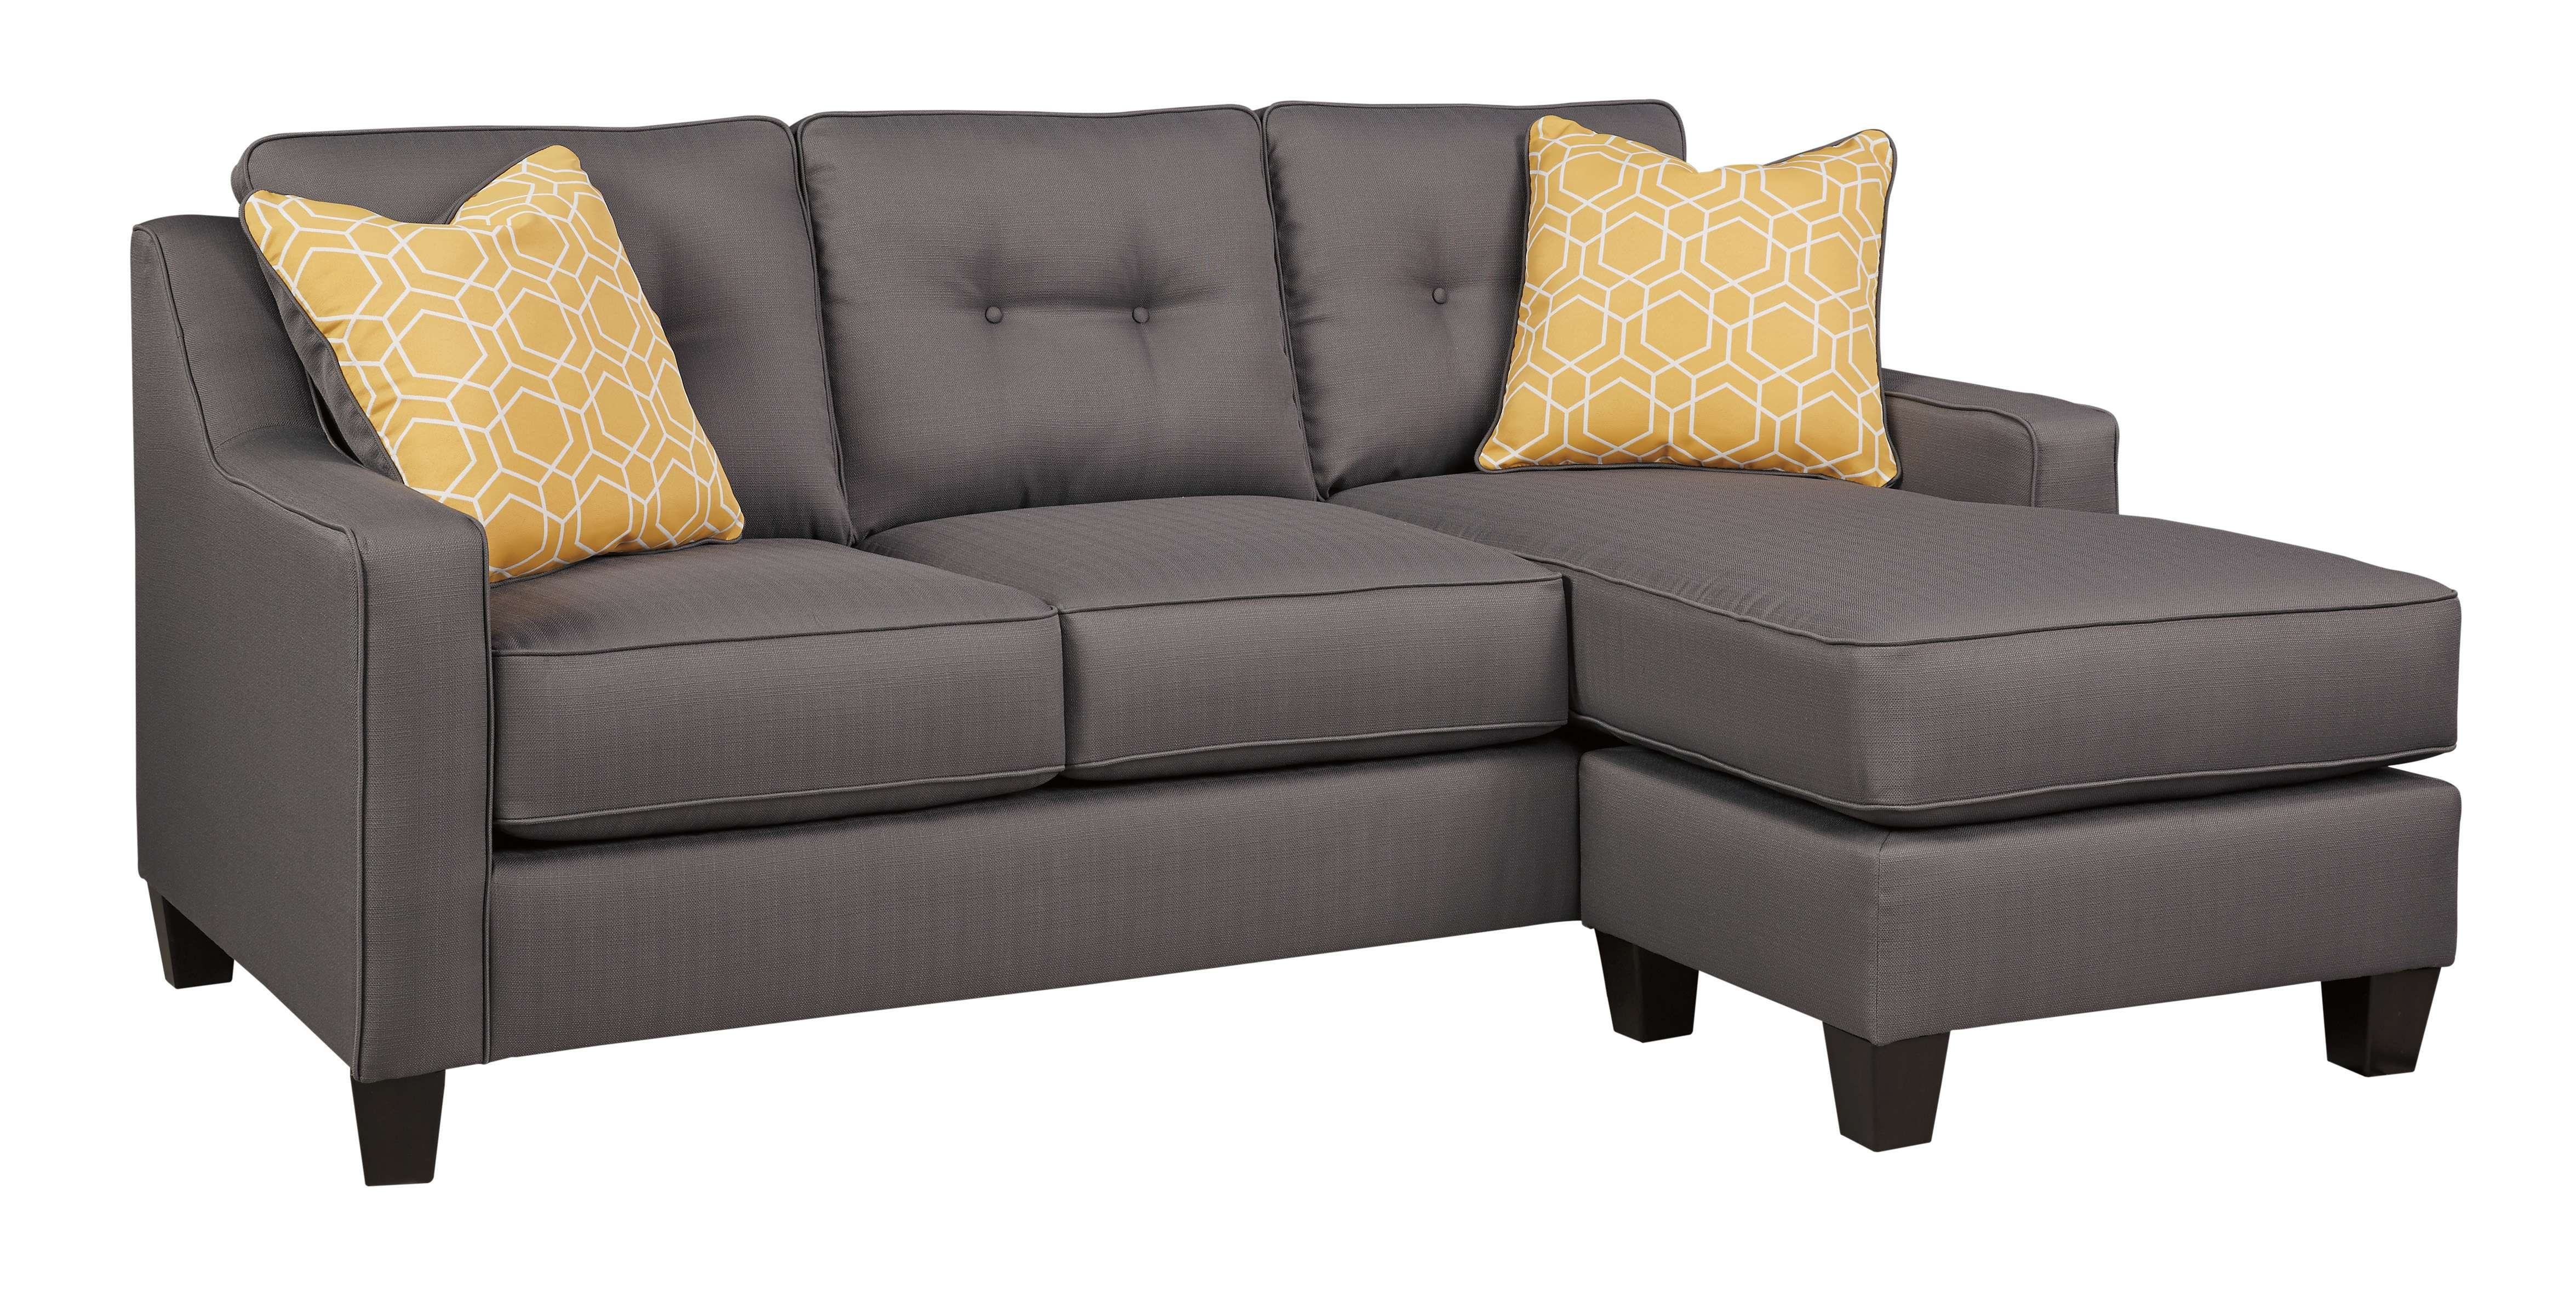 Lowest Price On Signature Design By Ashley Benchcraft Aldie Nuvella Gray Sofa Chaise 6870218 Shop Today Contemporary Sofa Chaise Sofa Furniture